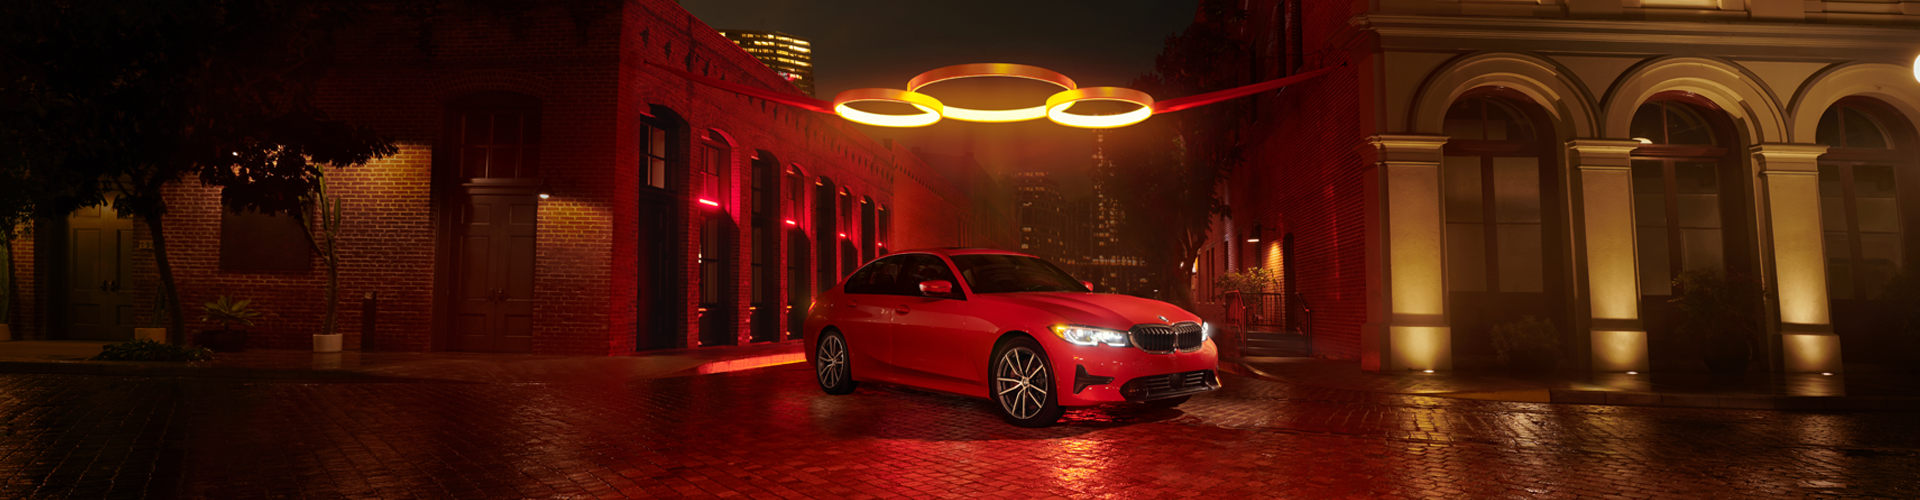 New BMW 3 Series - Red